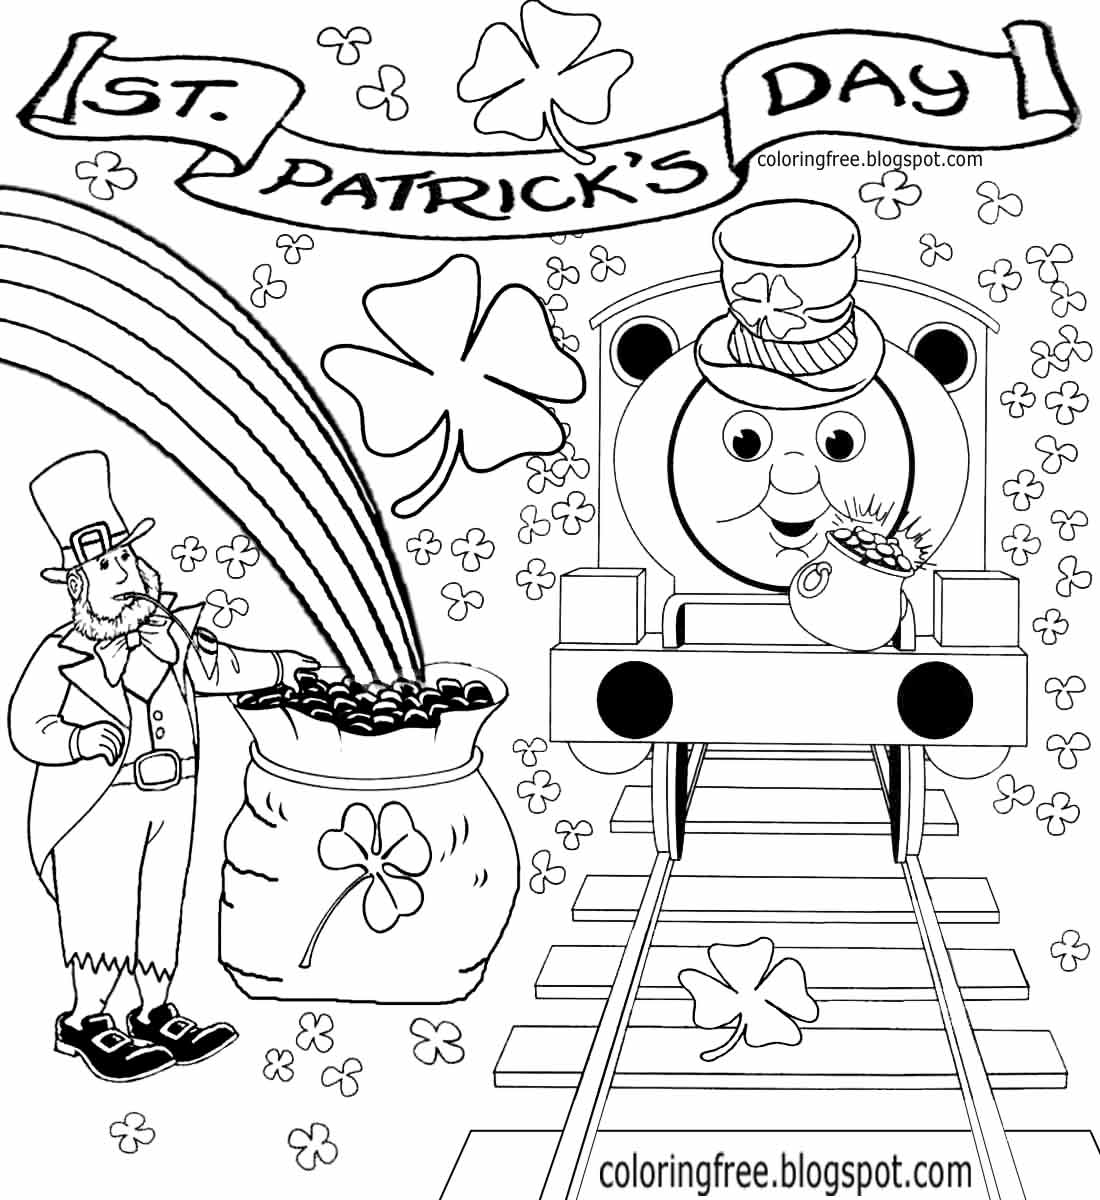 Free Coloring Pages Printable Pictures To Color Kids Drawing Ideas March